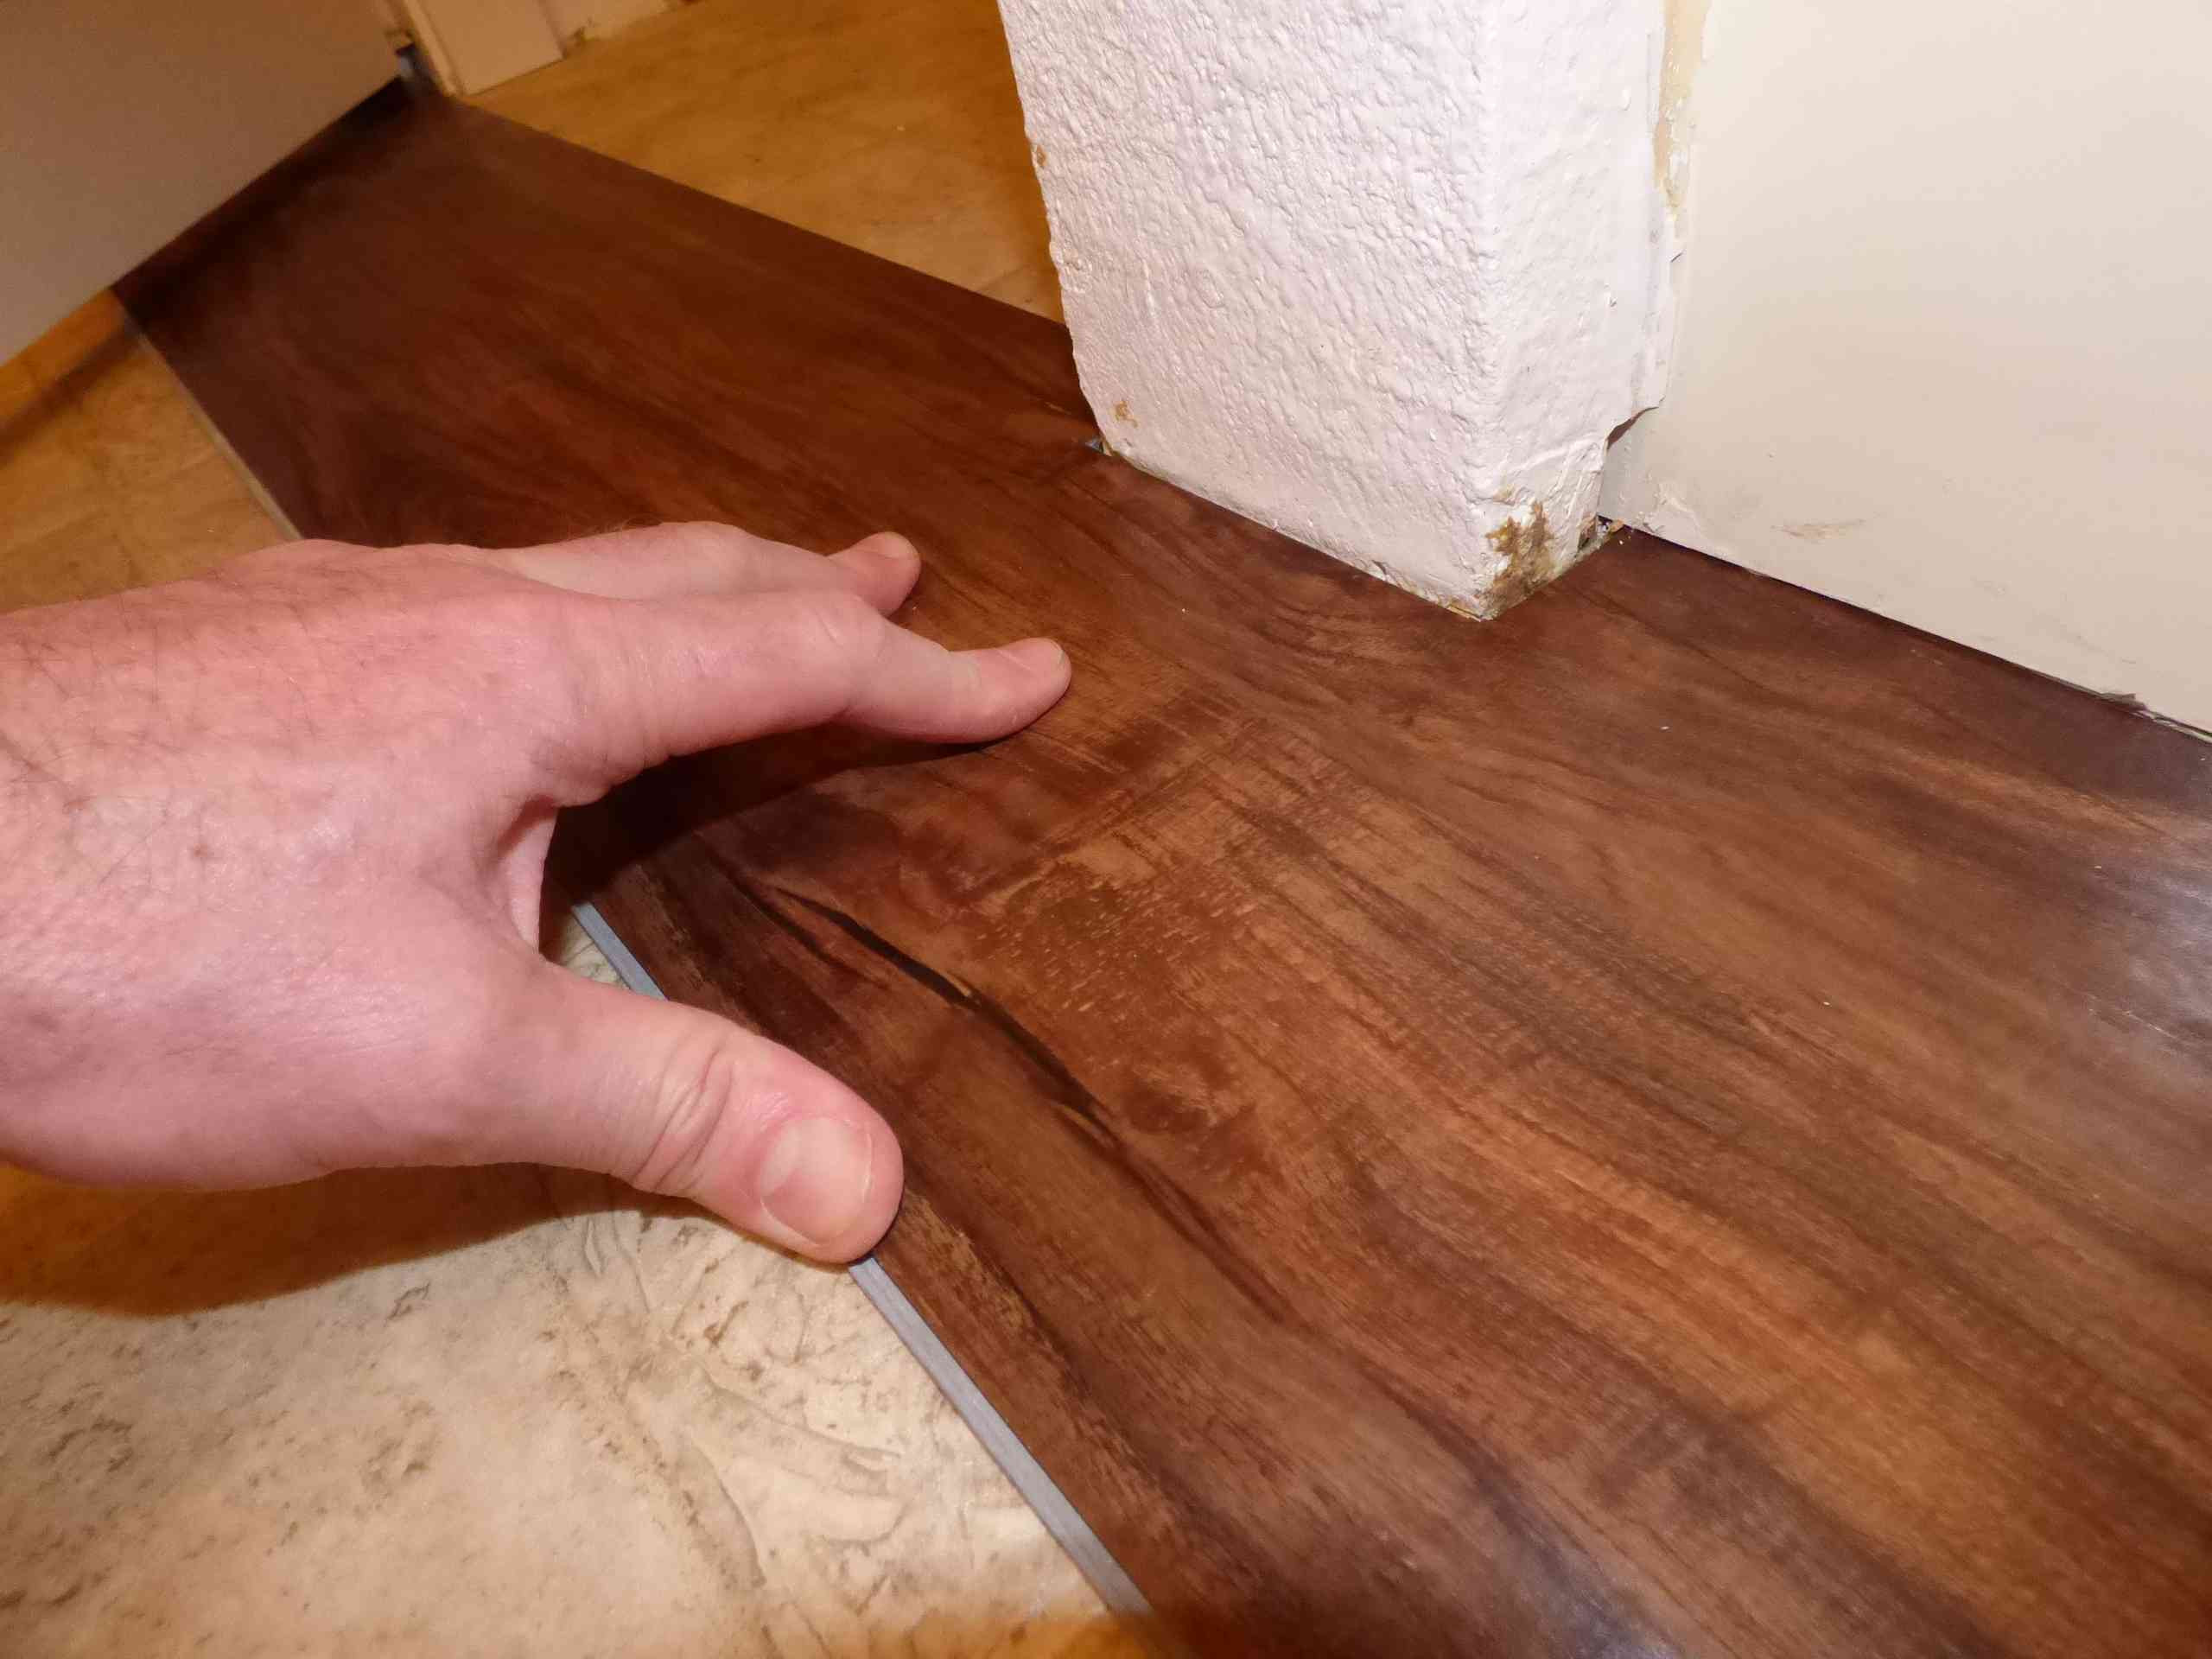 which direction should you lay hardwood floors of its easy and fast to install plank vinyl flooring with regard to fitting plank around protrusions 56a4a04f3df78cf7728350a3 jpg